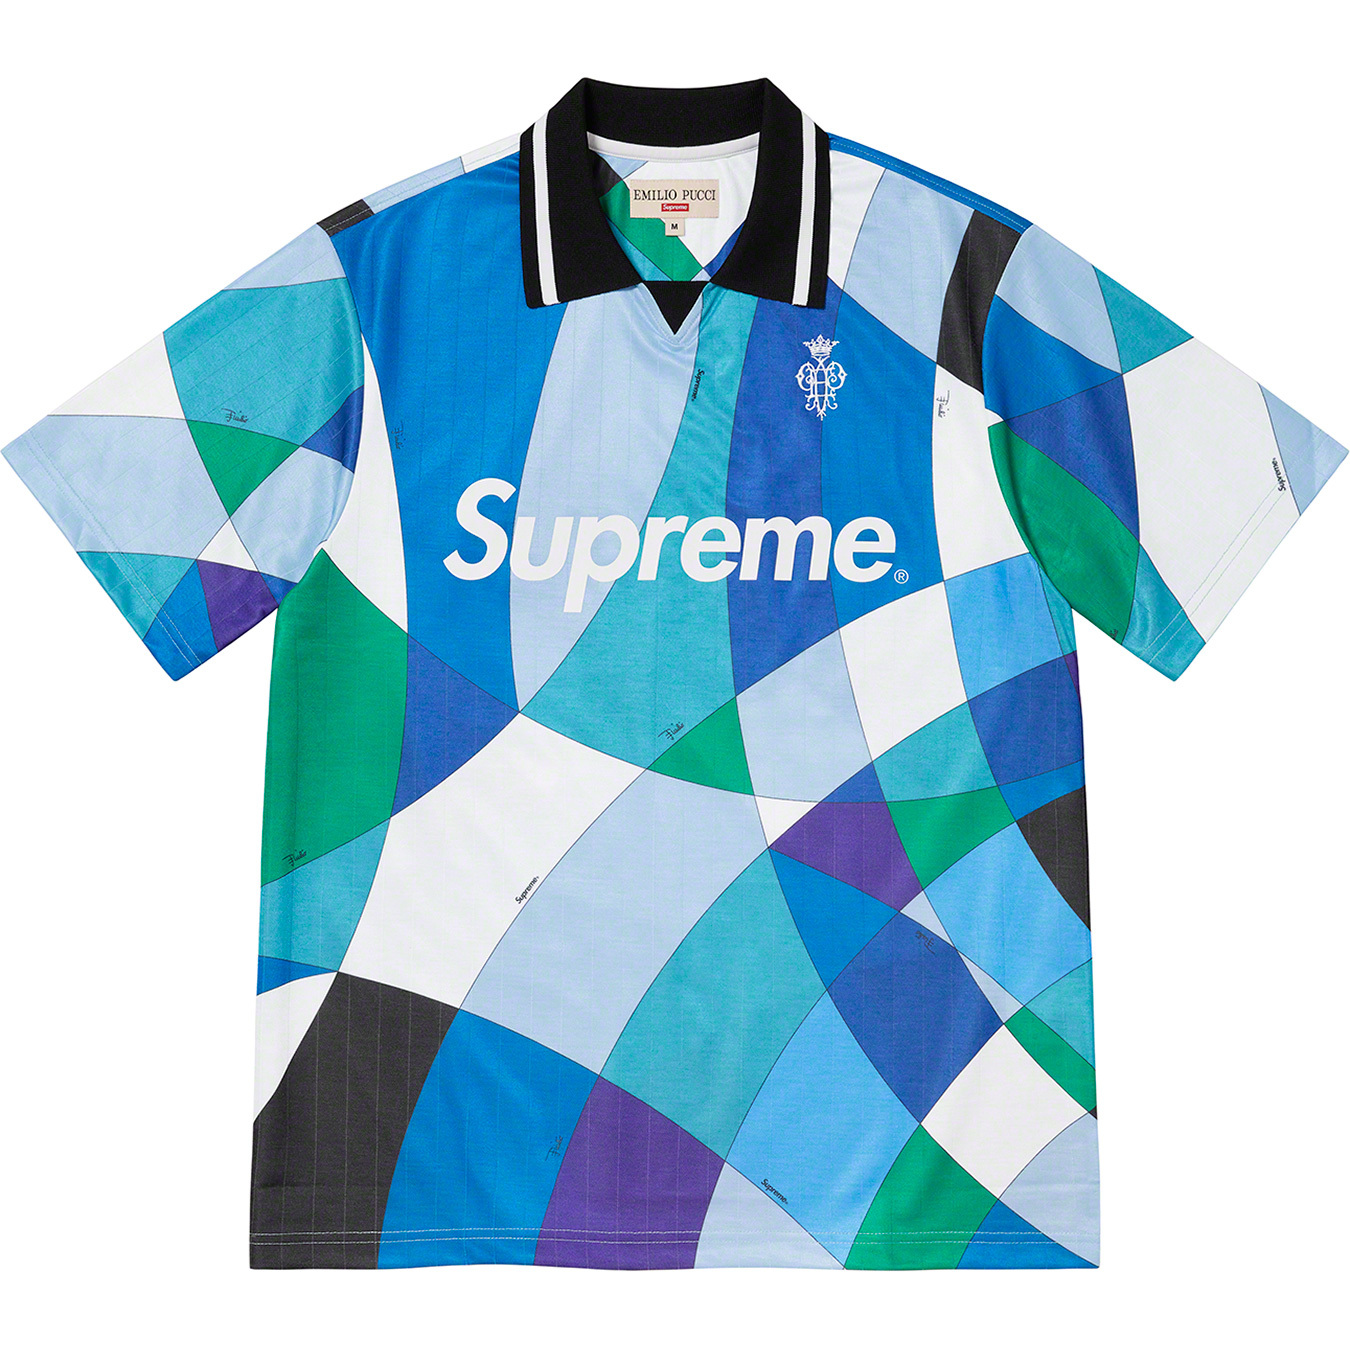 supreme-emilio-pucci-21ss-collaboration-release-20210612-week16-soccer-jersey